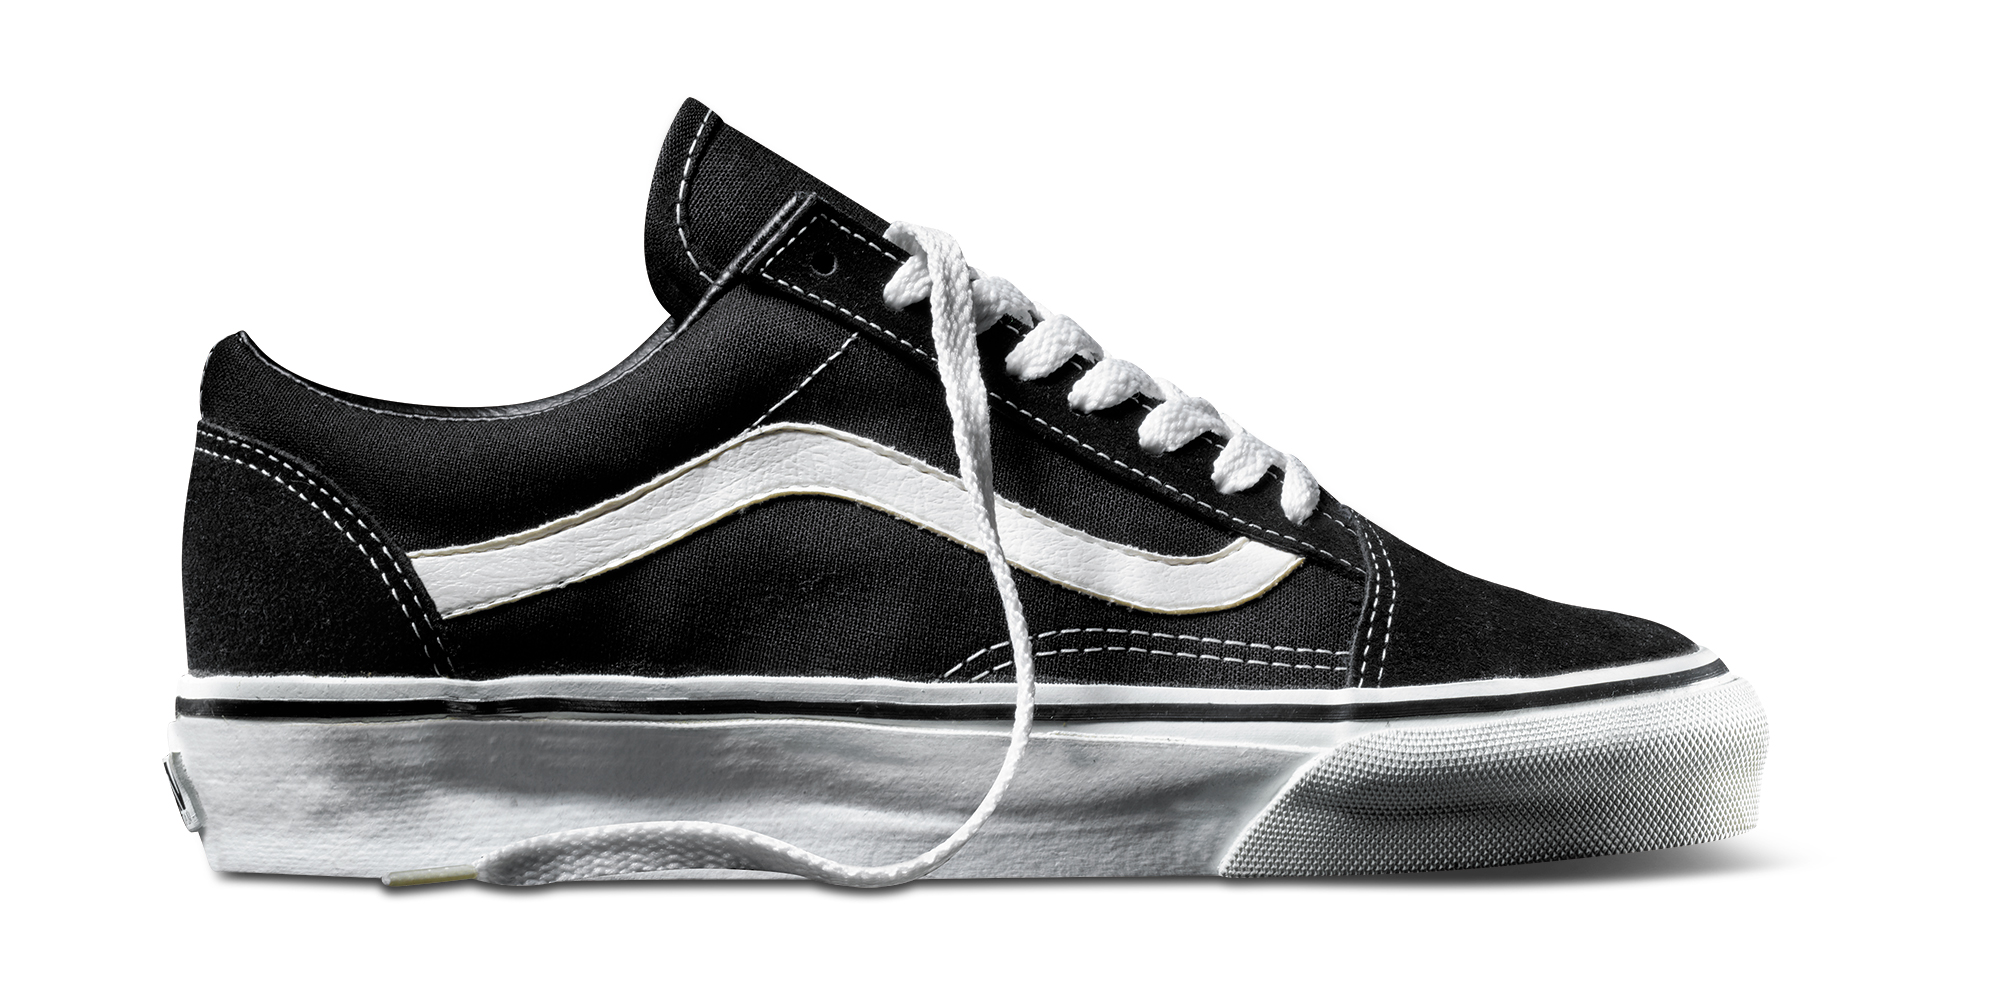 1c9d2296a23 The Vans sidestripe started as a mere doodle from founder Paul Van Doren  and has since turned into an iconic symbol of the brands heritage.